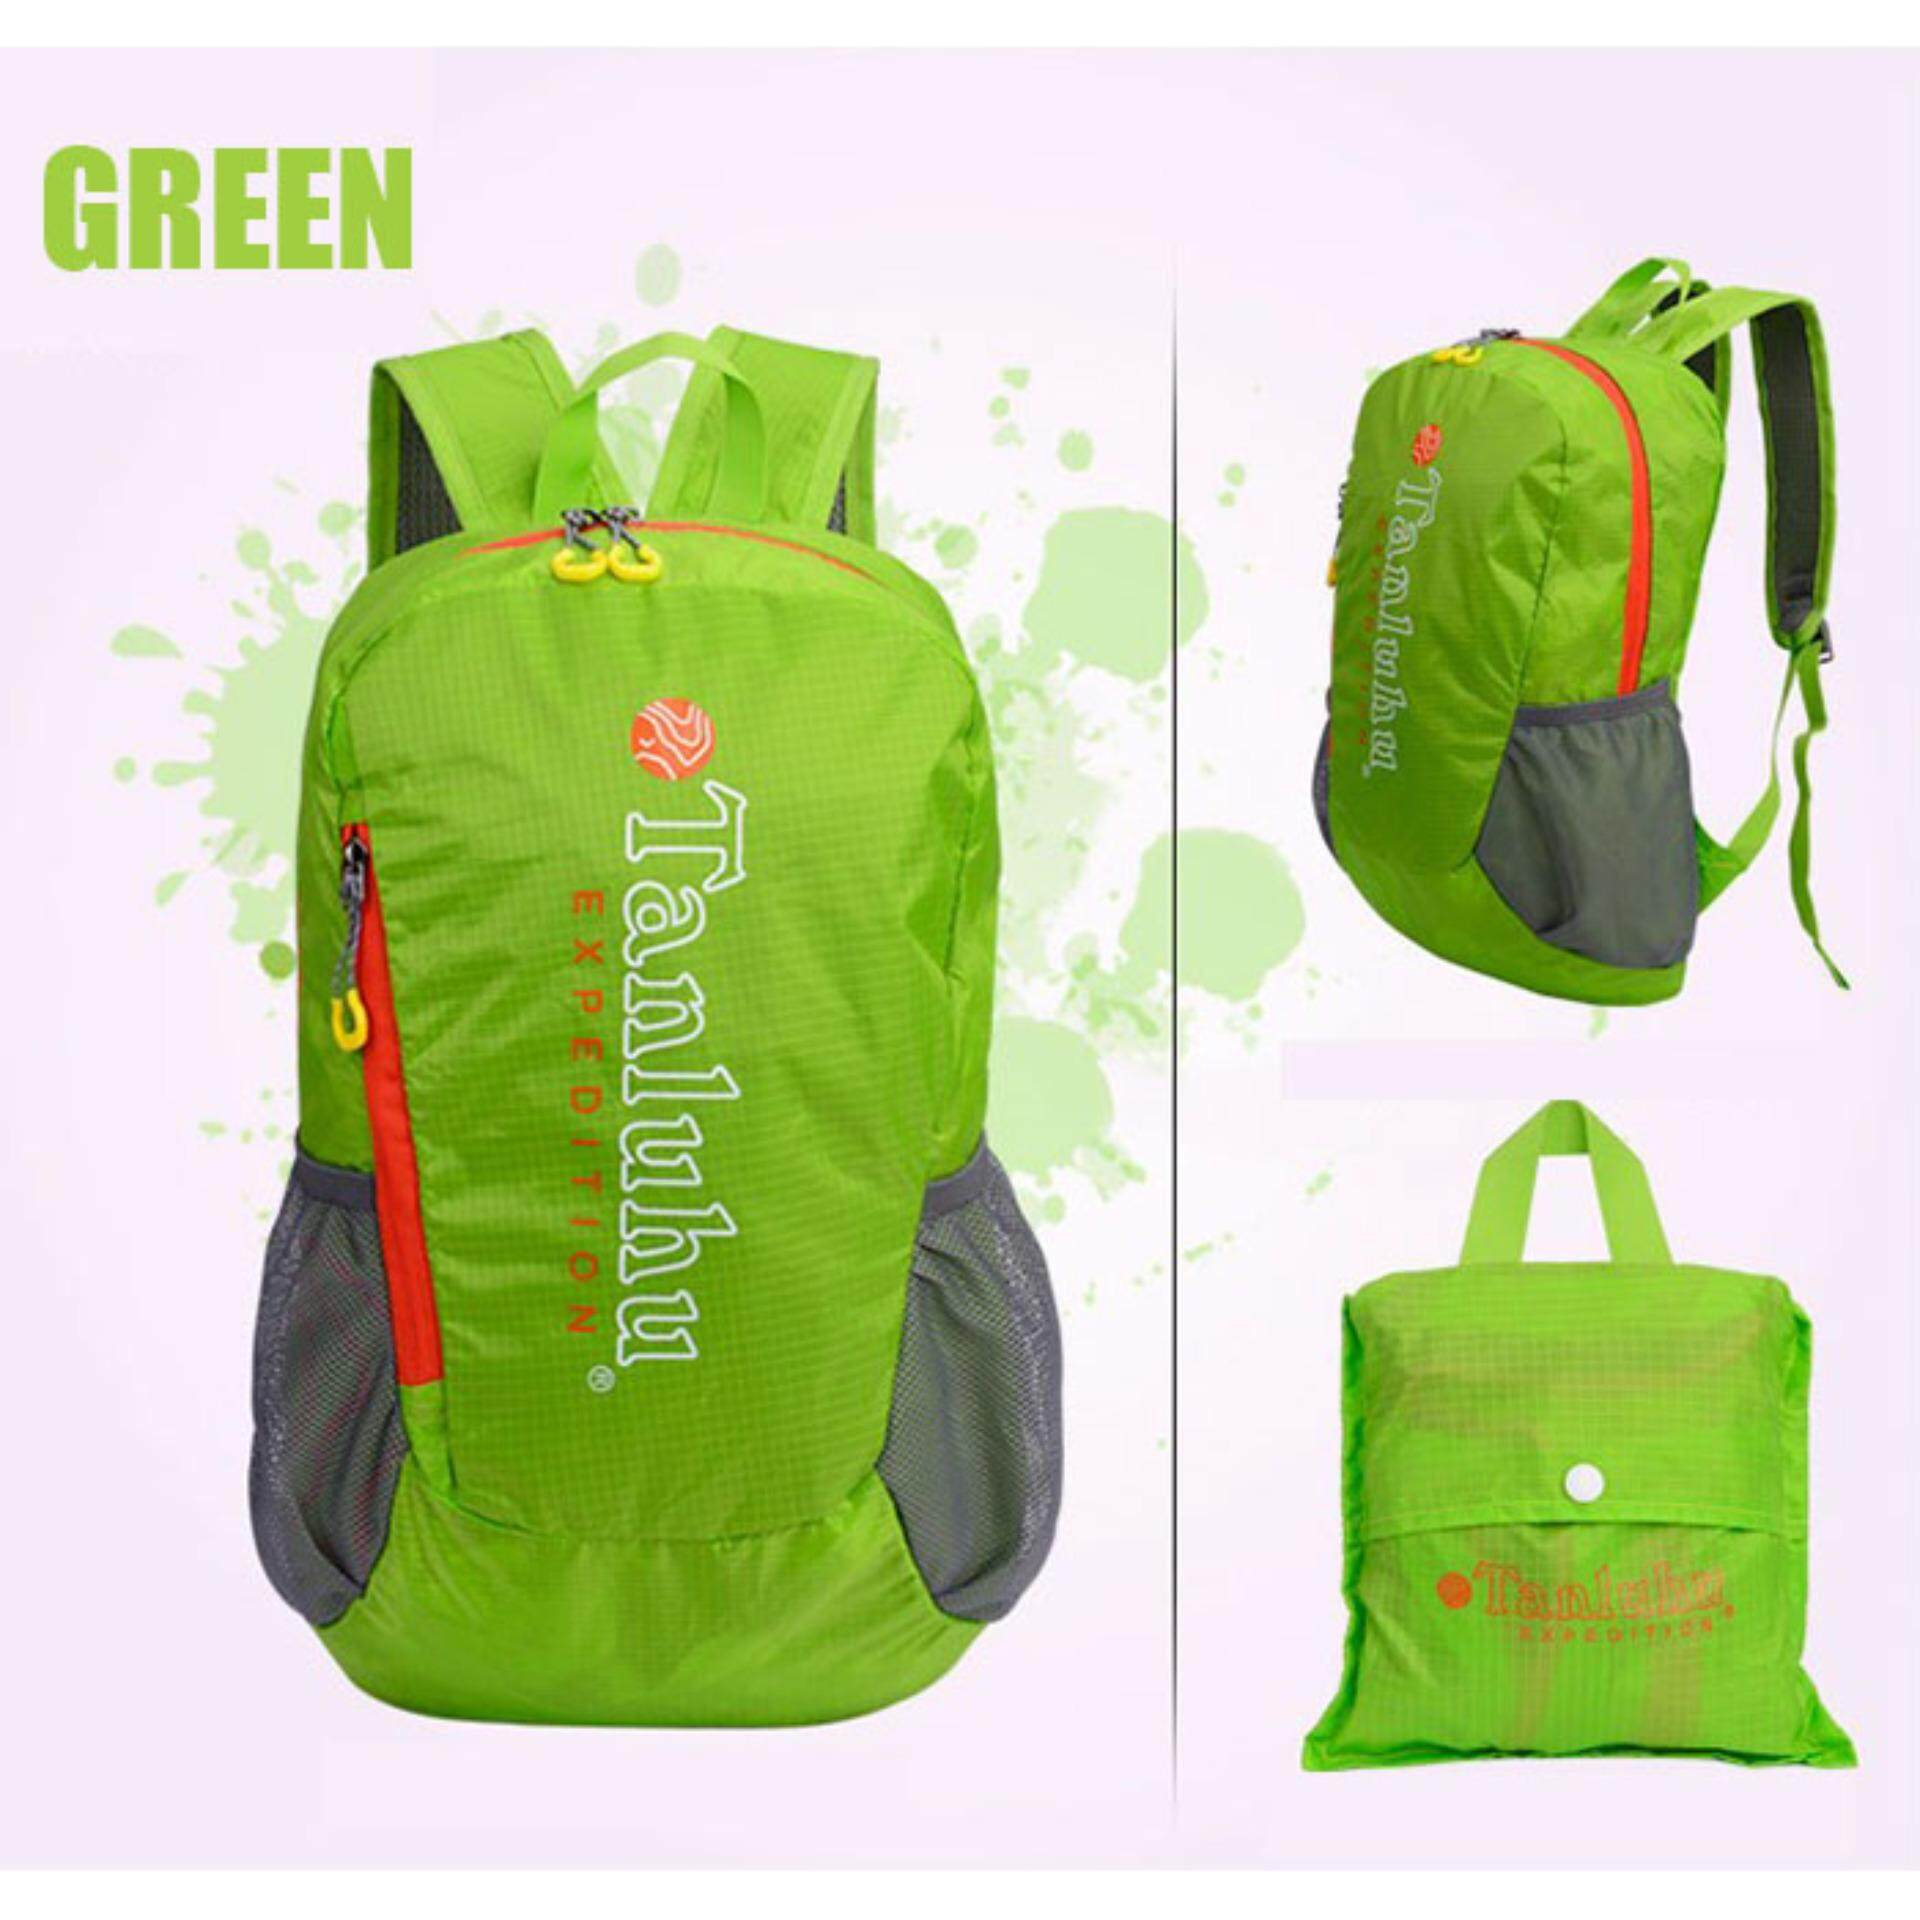 [CLEARANCE SALE] (FREE DELIVERY) Tanluhu 20L Travel Bagpack Travel Bag Water Resistant Foldable Outdoor Bagpack - Green